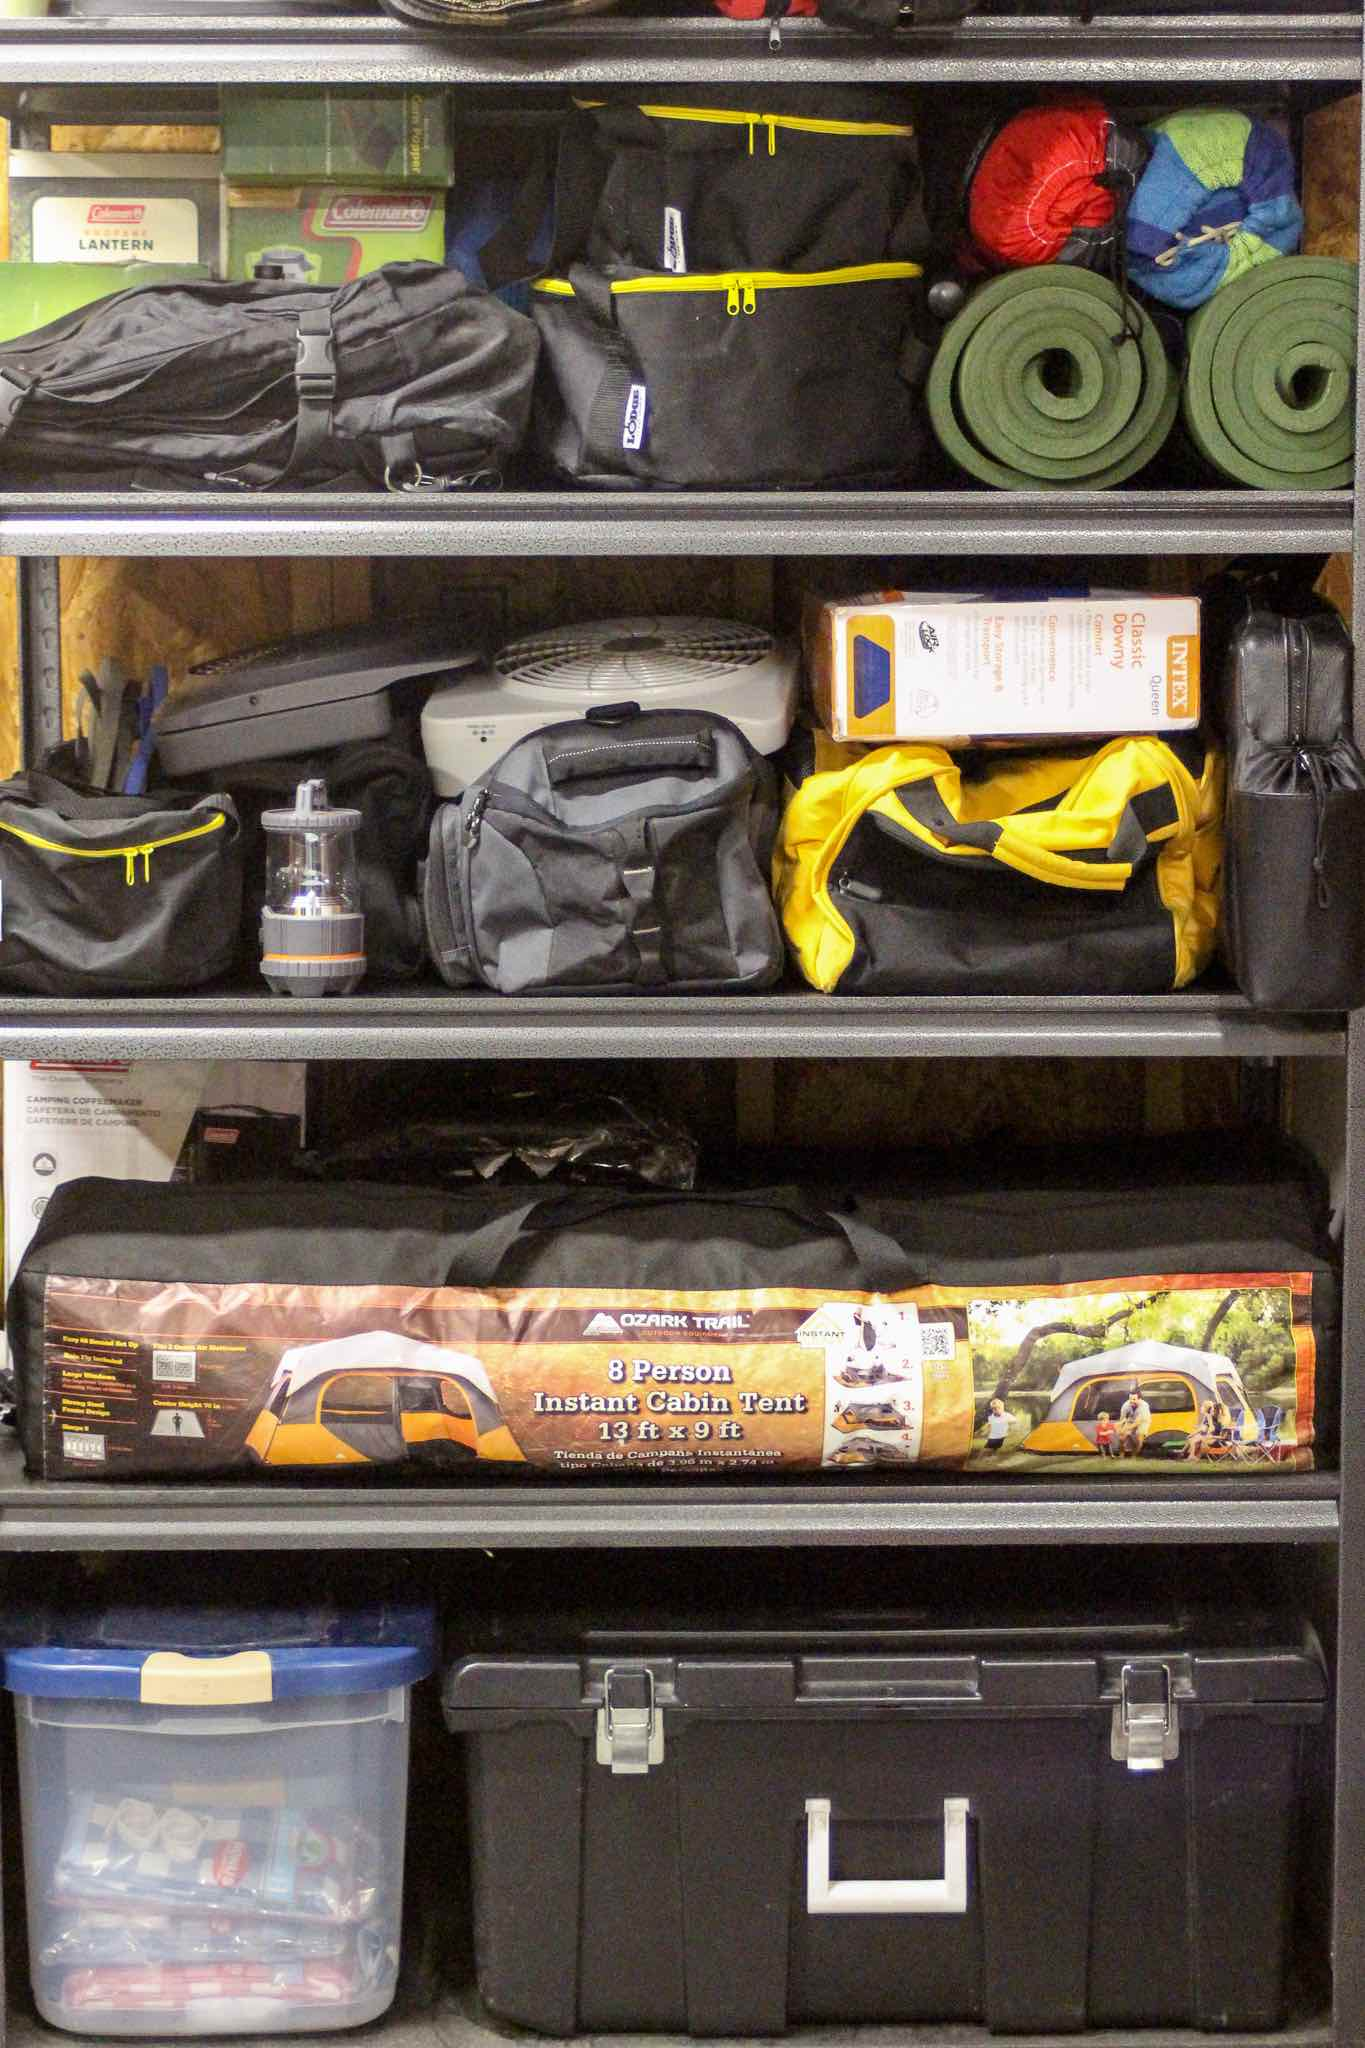 stored car camping gear